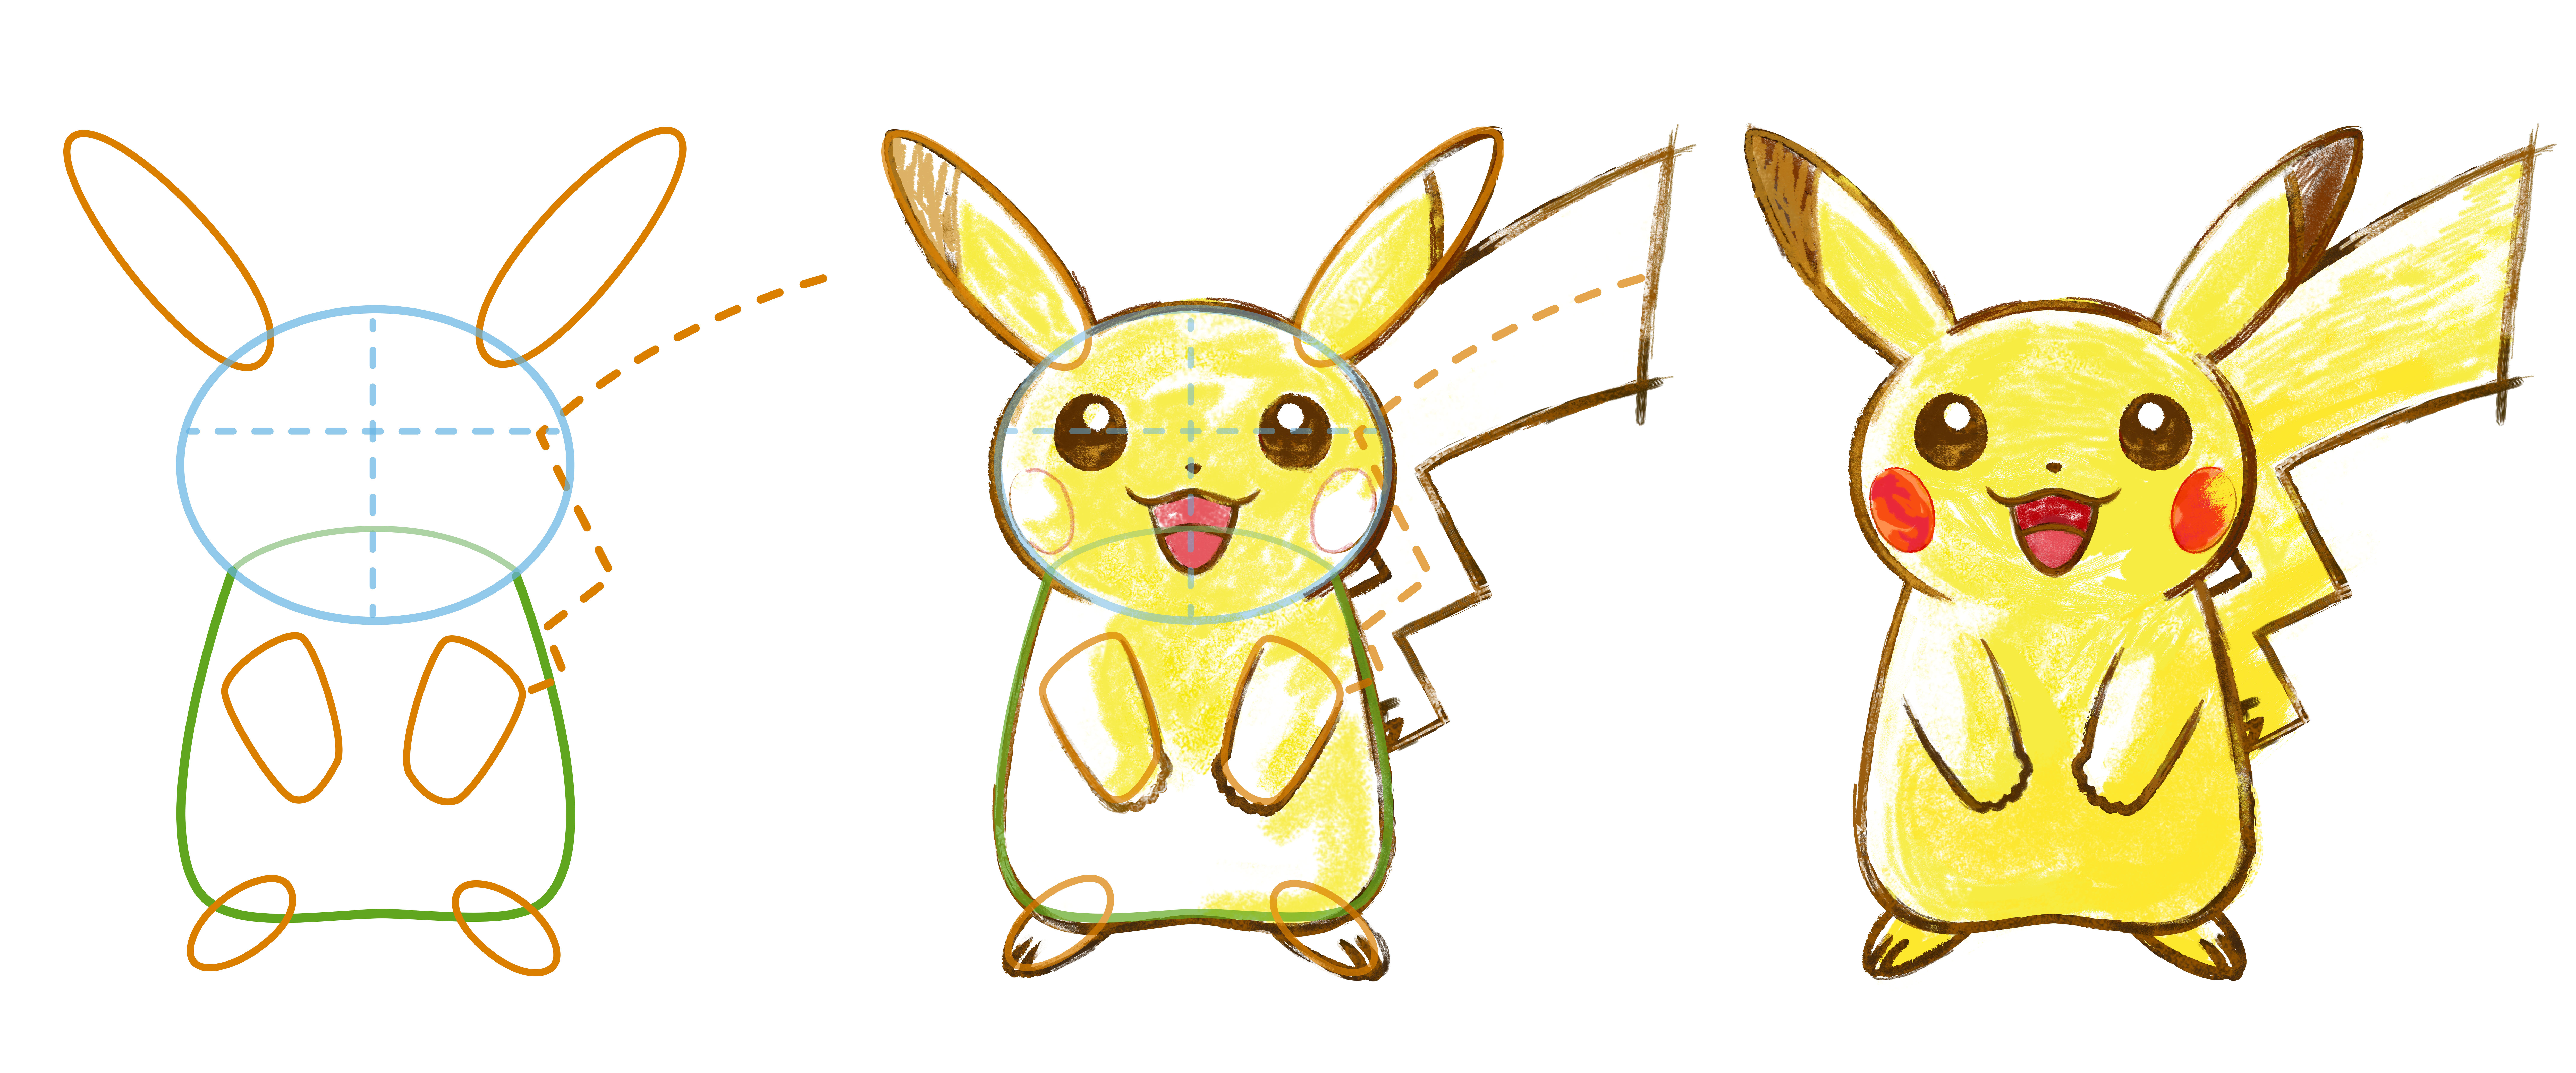 Learn to Draw Your Favorite Pokémon in Pokémon Art Academy ... on how to draw feathers, how to draw yarn, how to draw hammer, how to draw ladder,